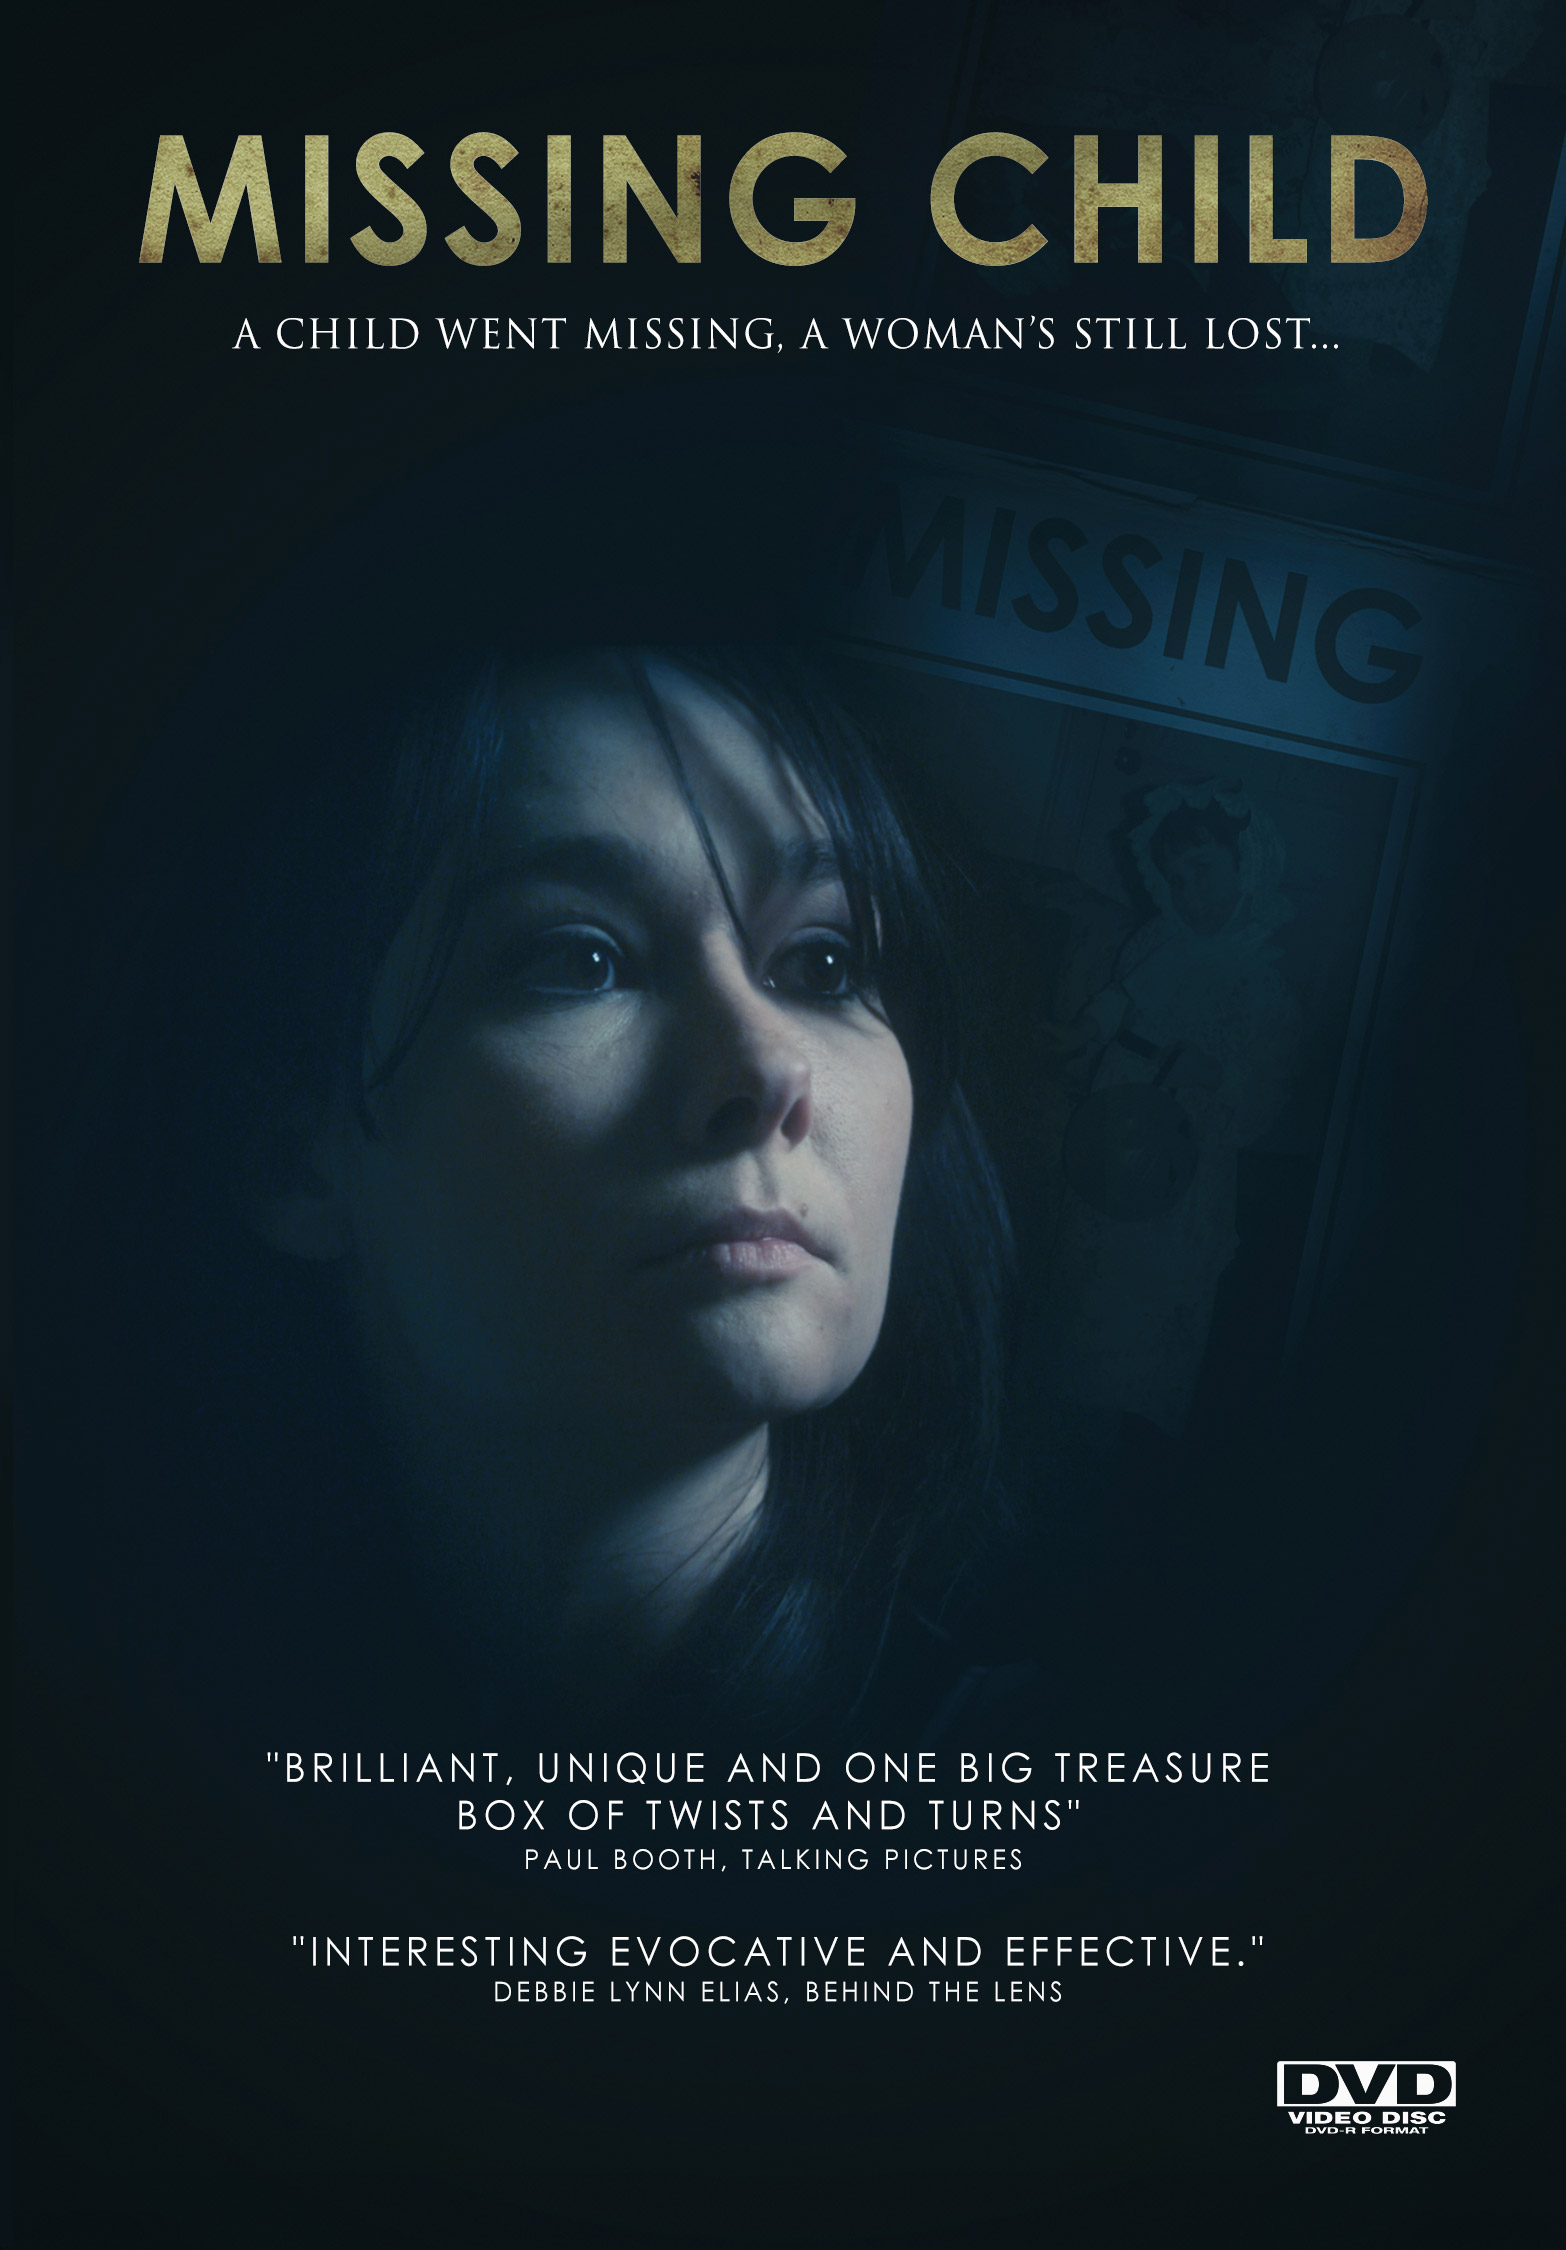 Missing Child DVD artwork